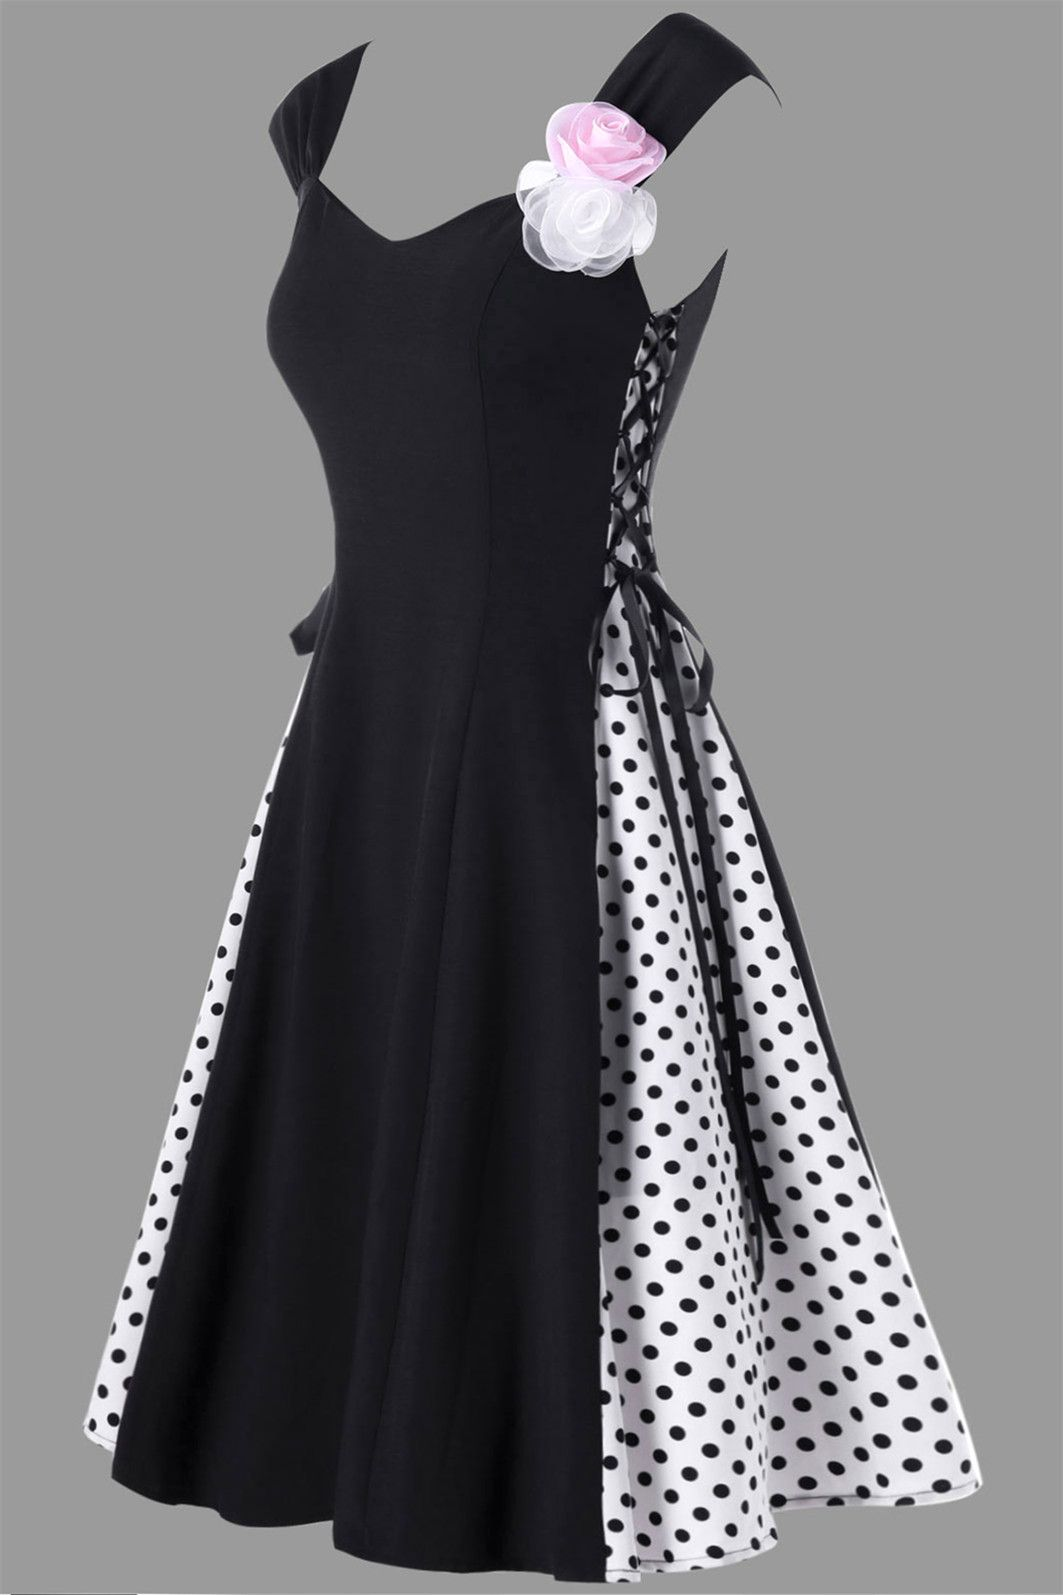 Lace dress styles for funeral   Retro Polka Dot Flower Embellished Lace Up Dress  Black  My